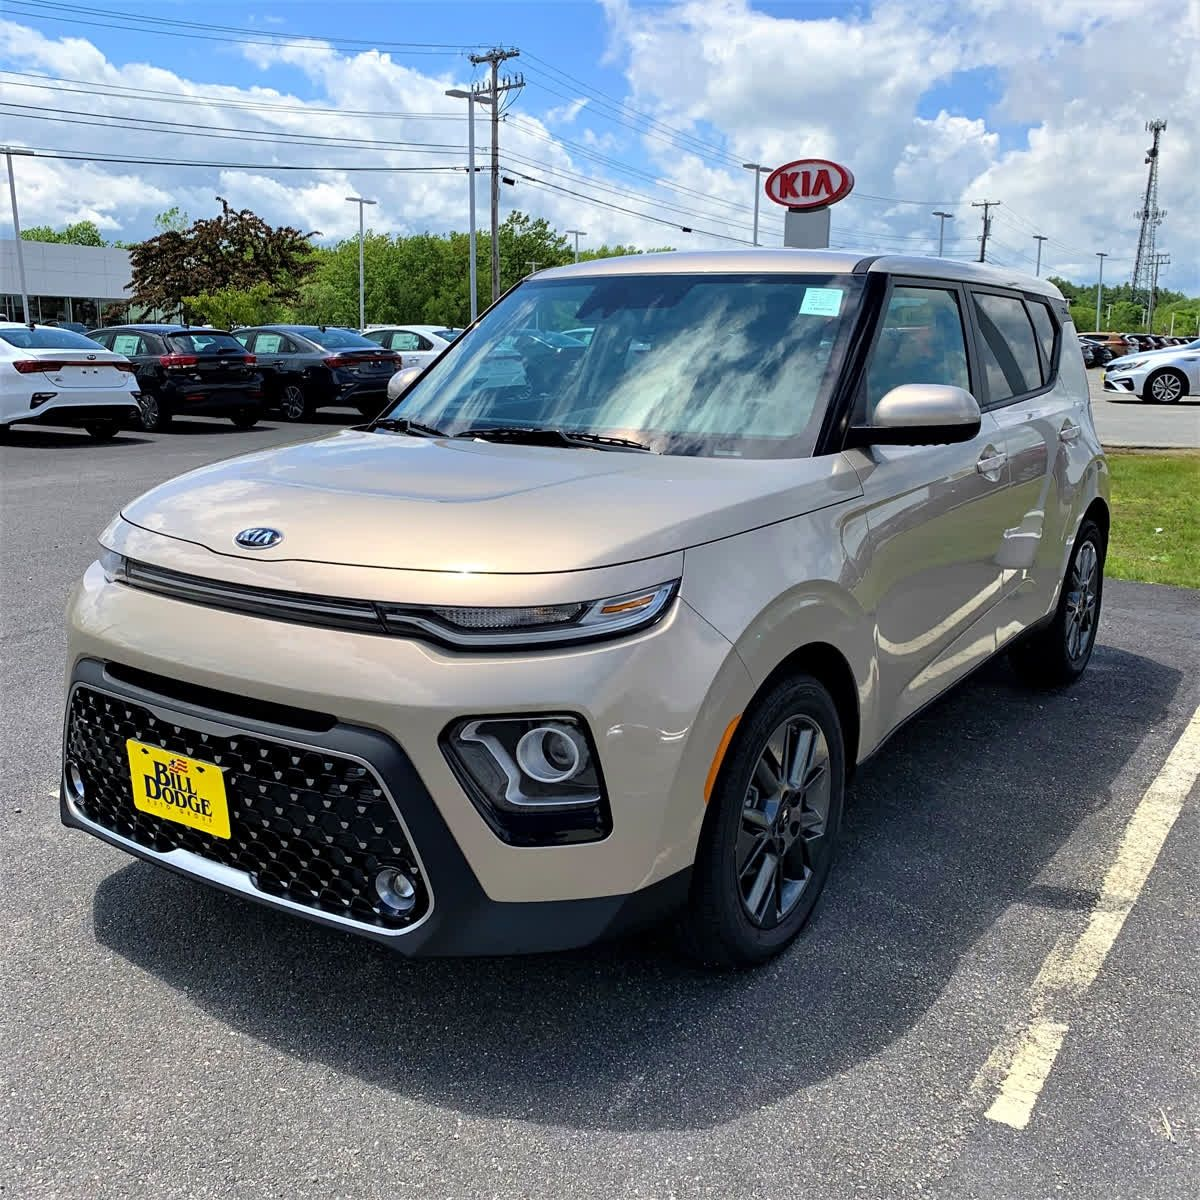 Newly Designed 2020 Kia Soul In The New Platinum Gold Exterior Color Shop Our Summer Soul Sales Bit Ly Kiasouls Kia S Kia Soul Kia Kia Soul Interior